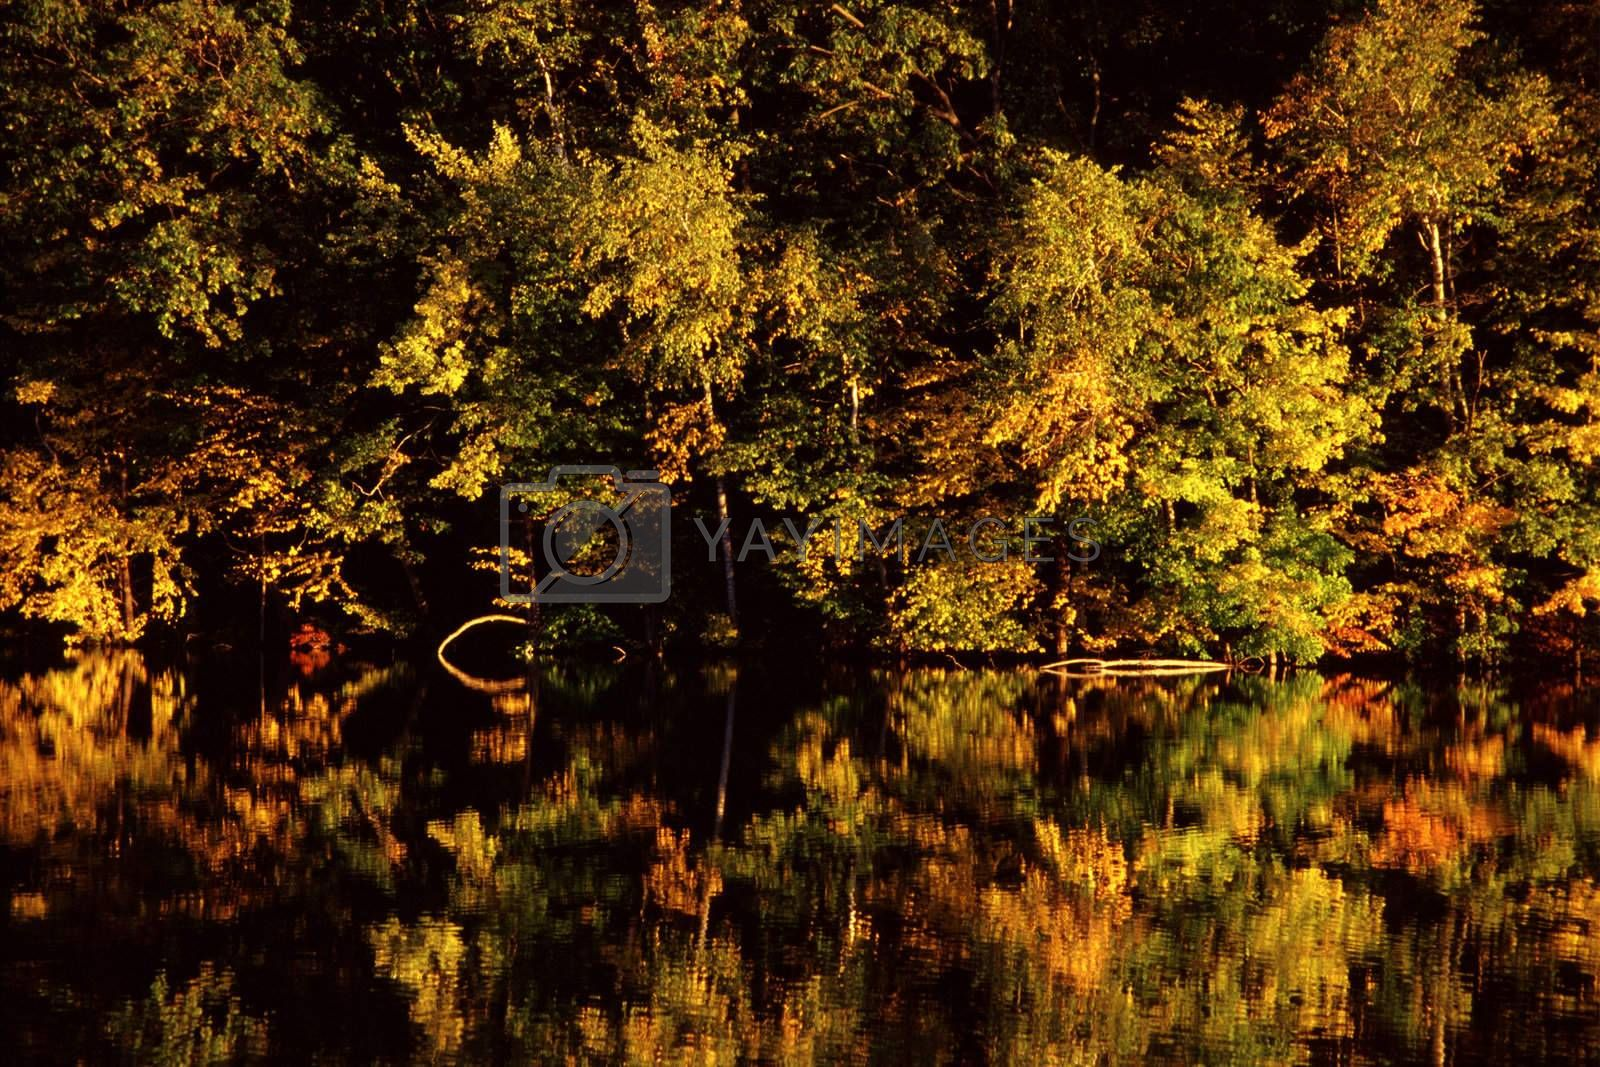 Some vivid foliage during autumn - a mirror image reflecting in the water.